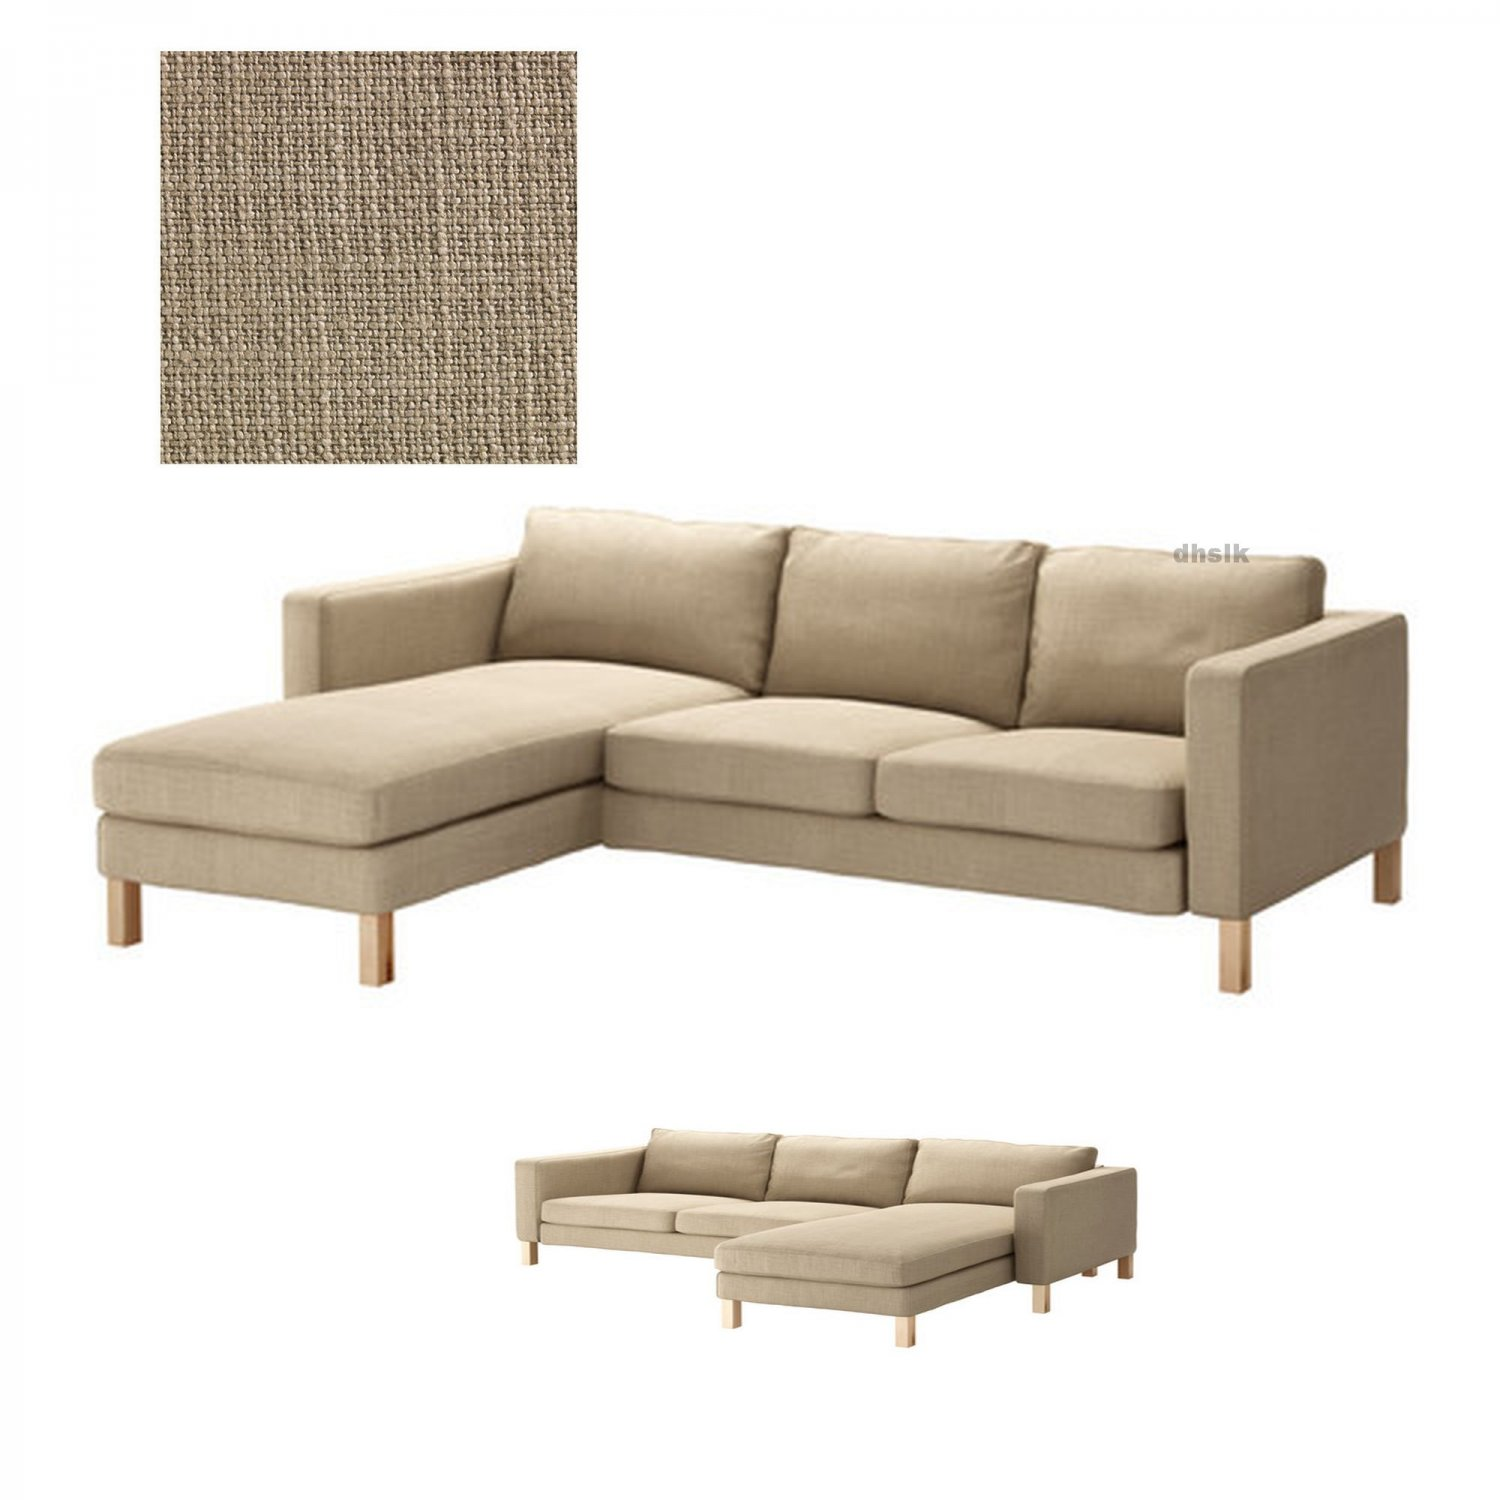 Ikea karlstad 2 seat loveseat sofa and chaise slipcover cover lindo beige lind add on Ikea karlstad sofa